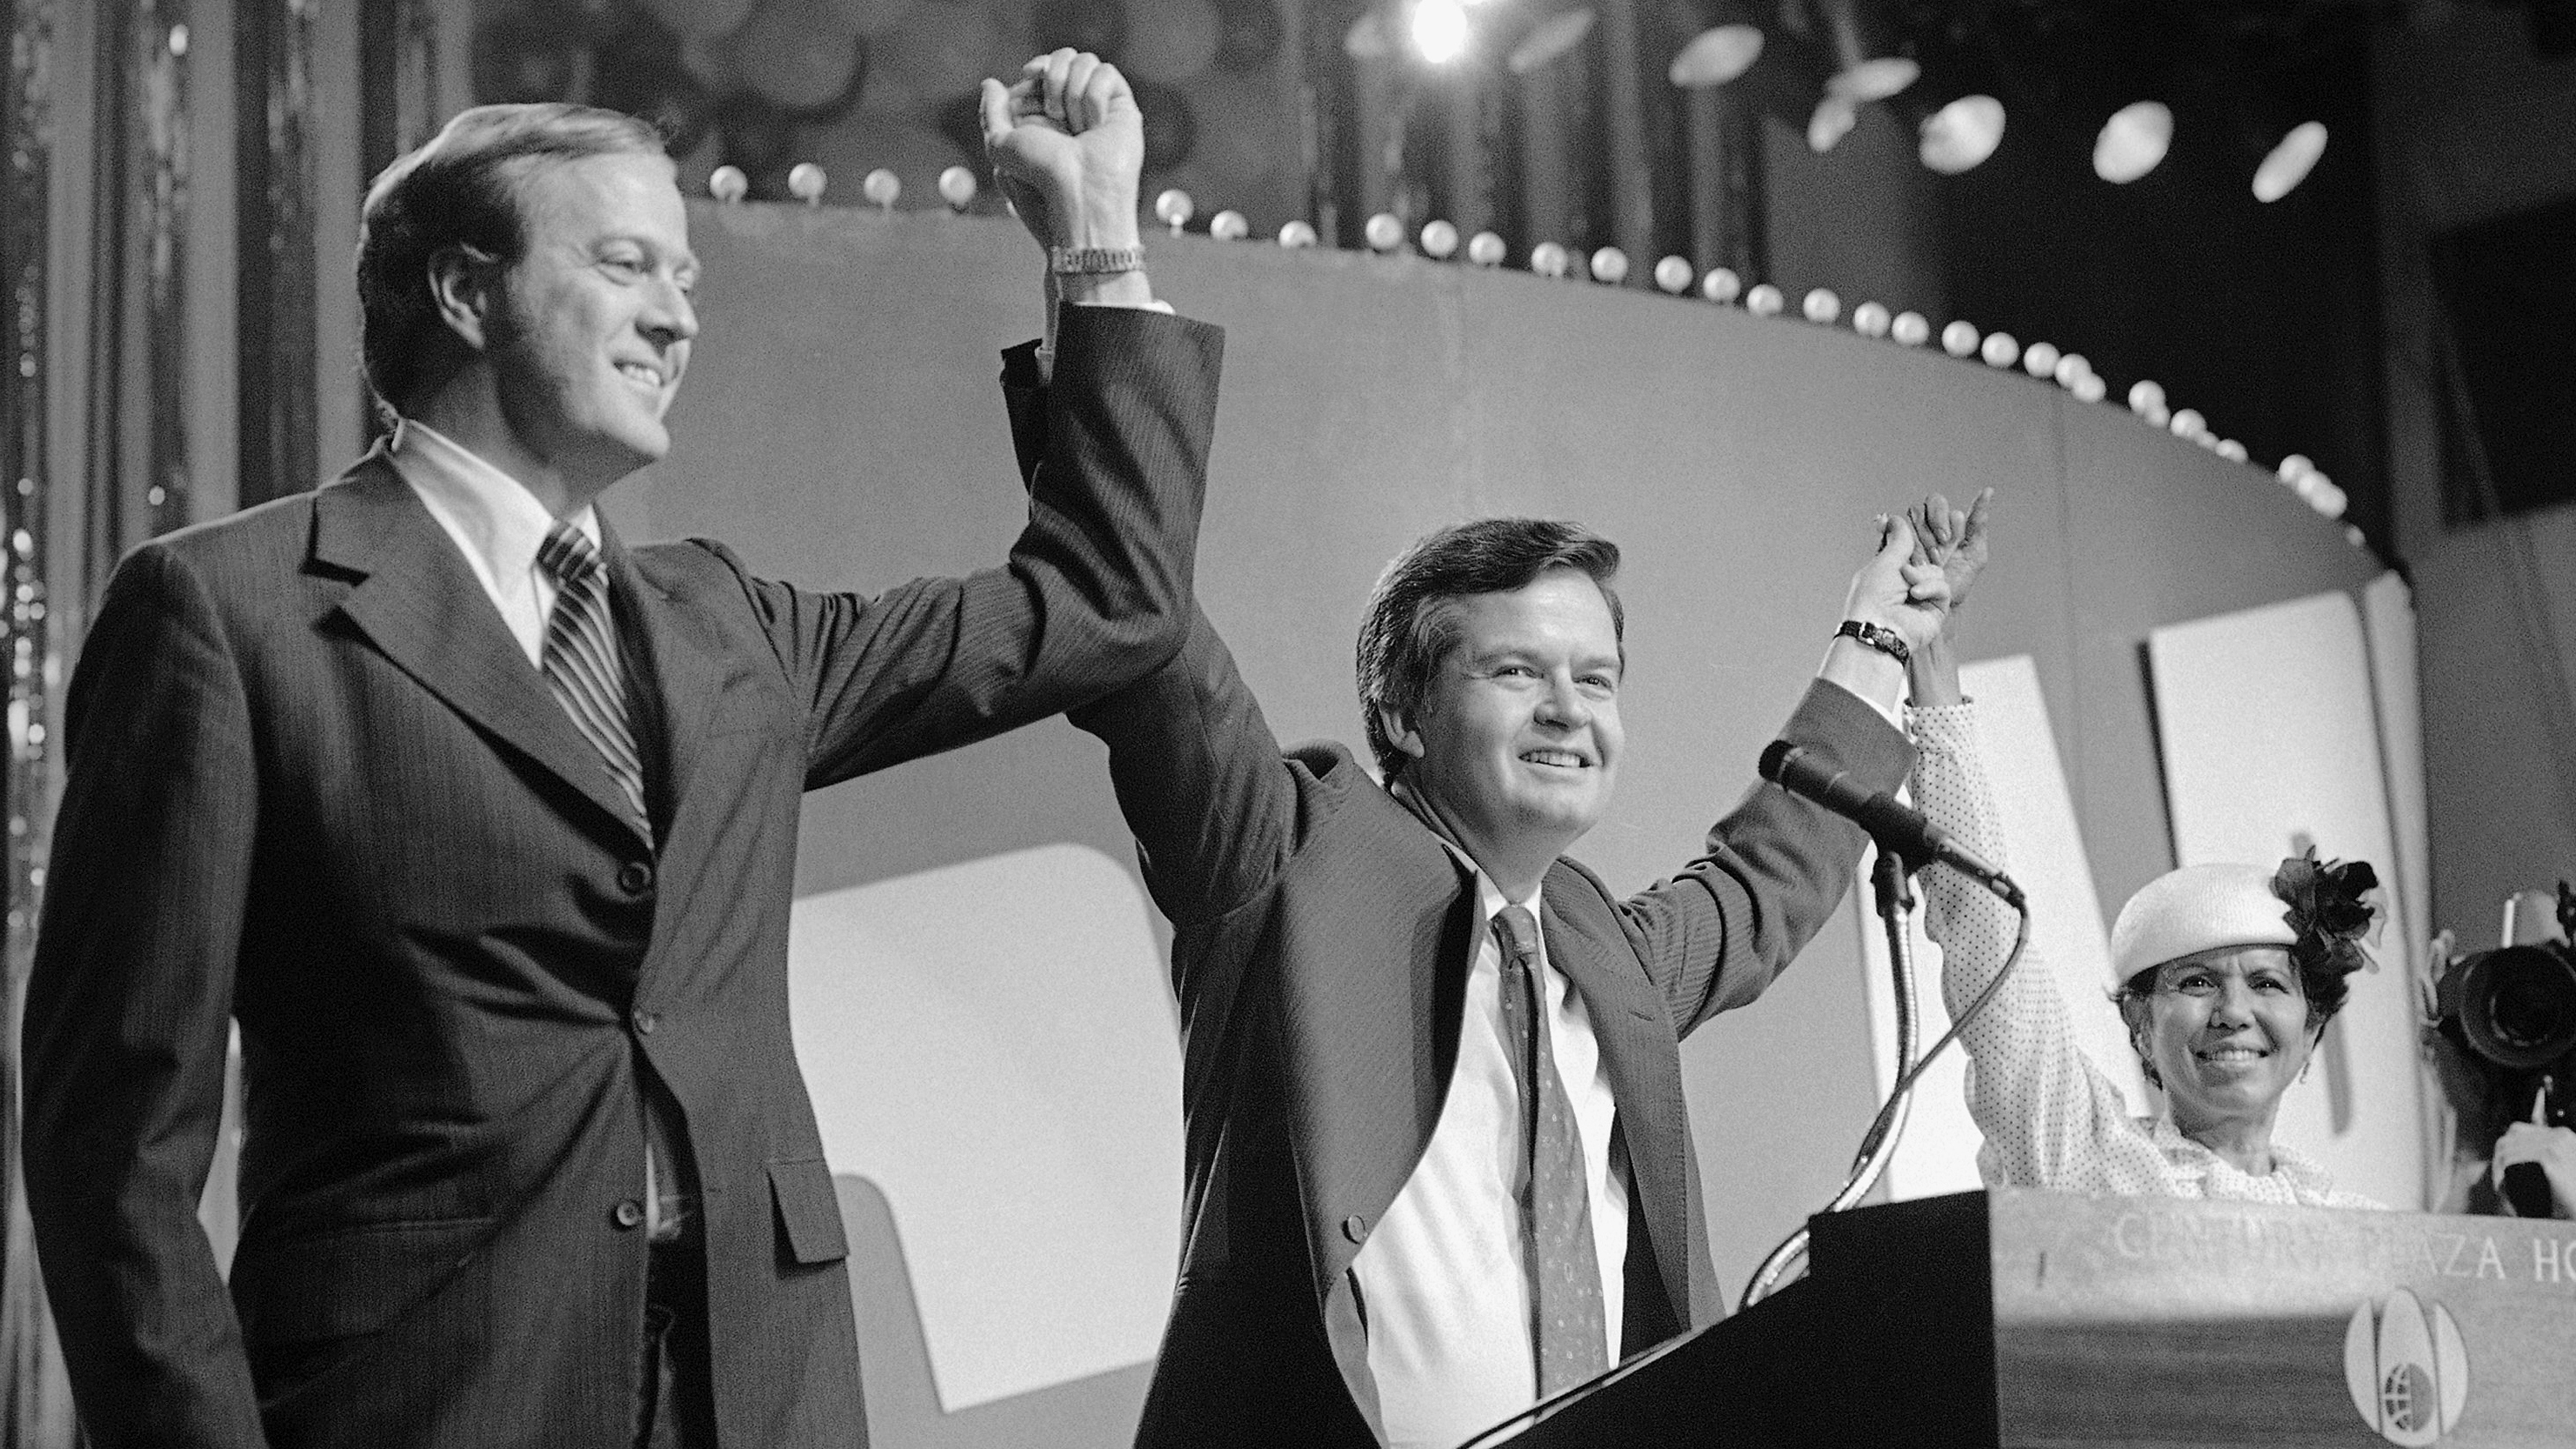 David Koch, left, running for vice president on the libertarian ticket in 1980.